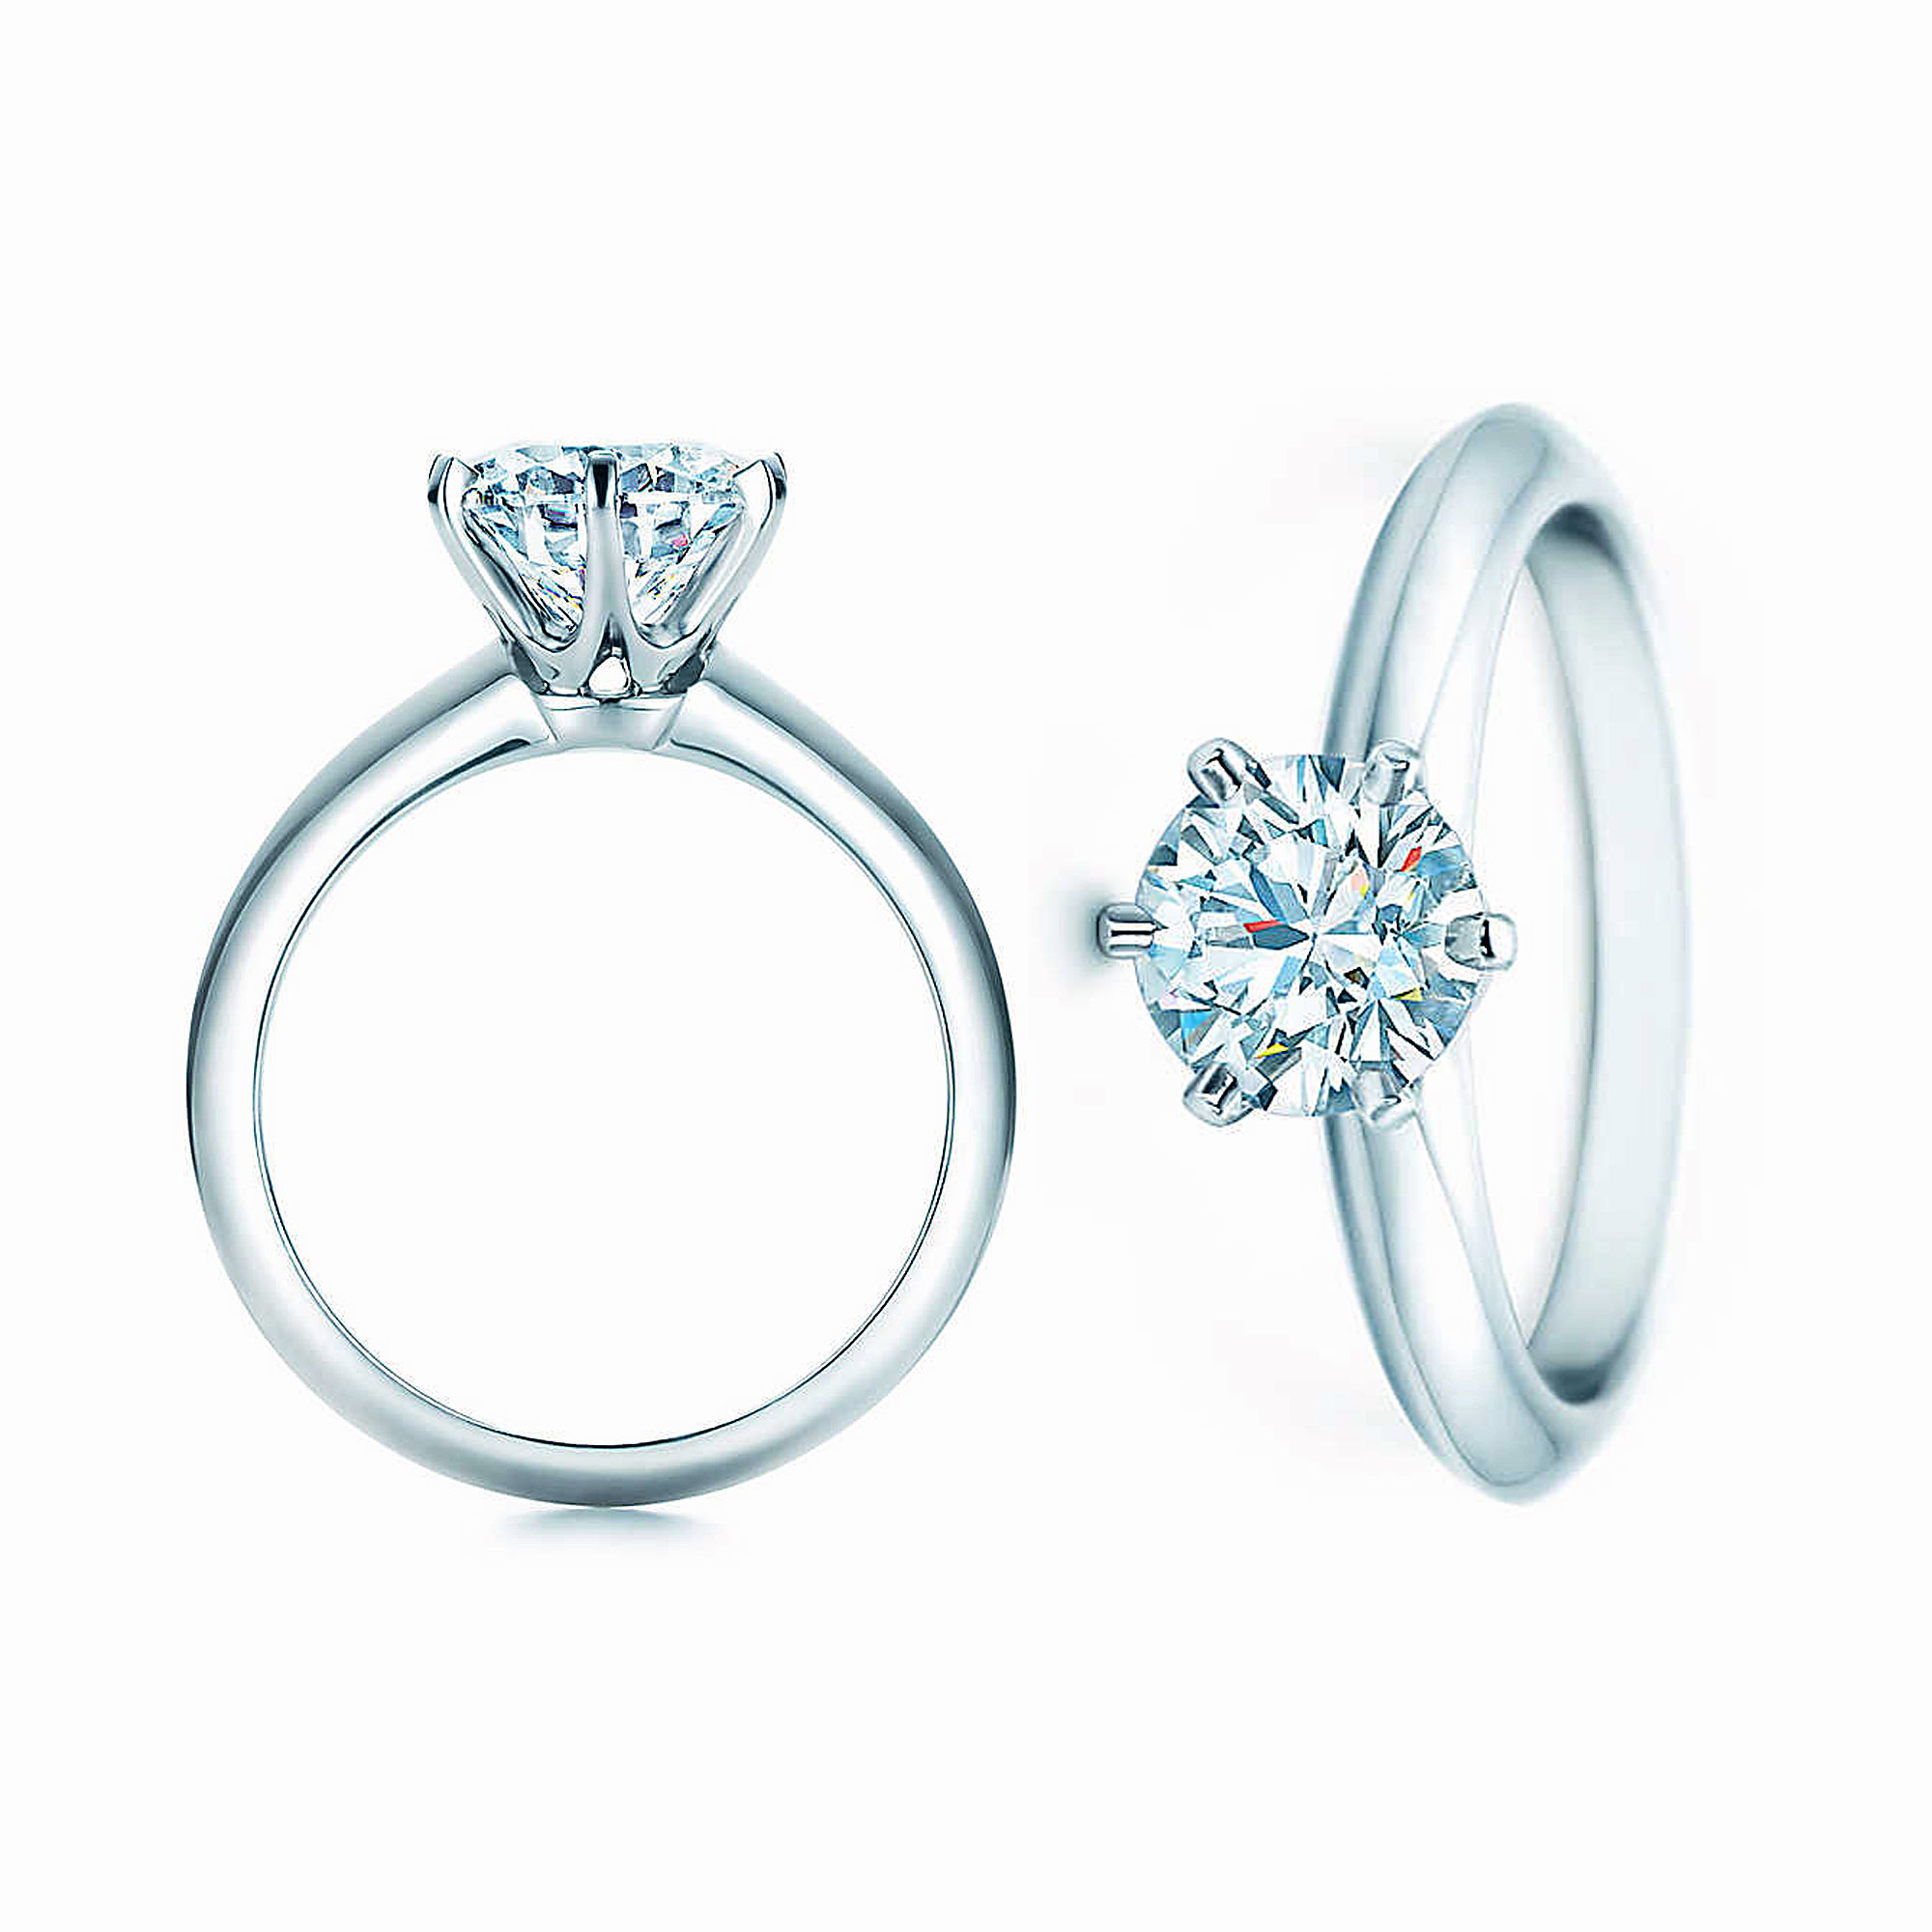 Tiffany Setting Diamond Engagement Ring